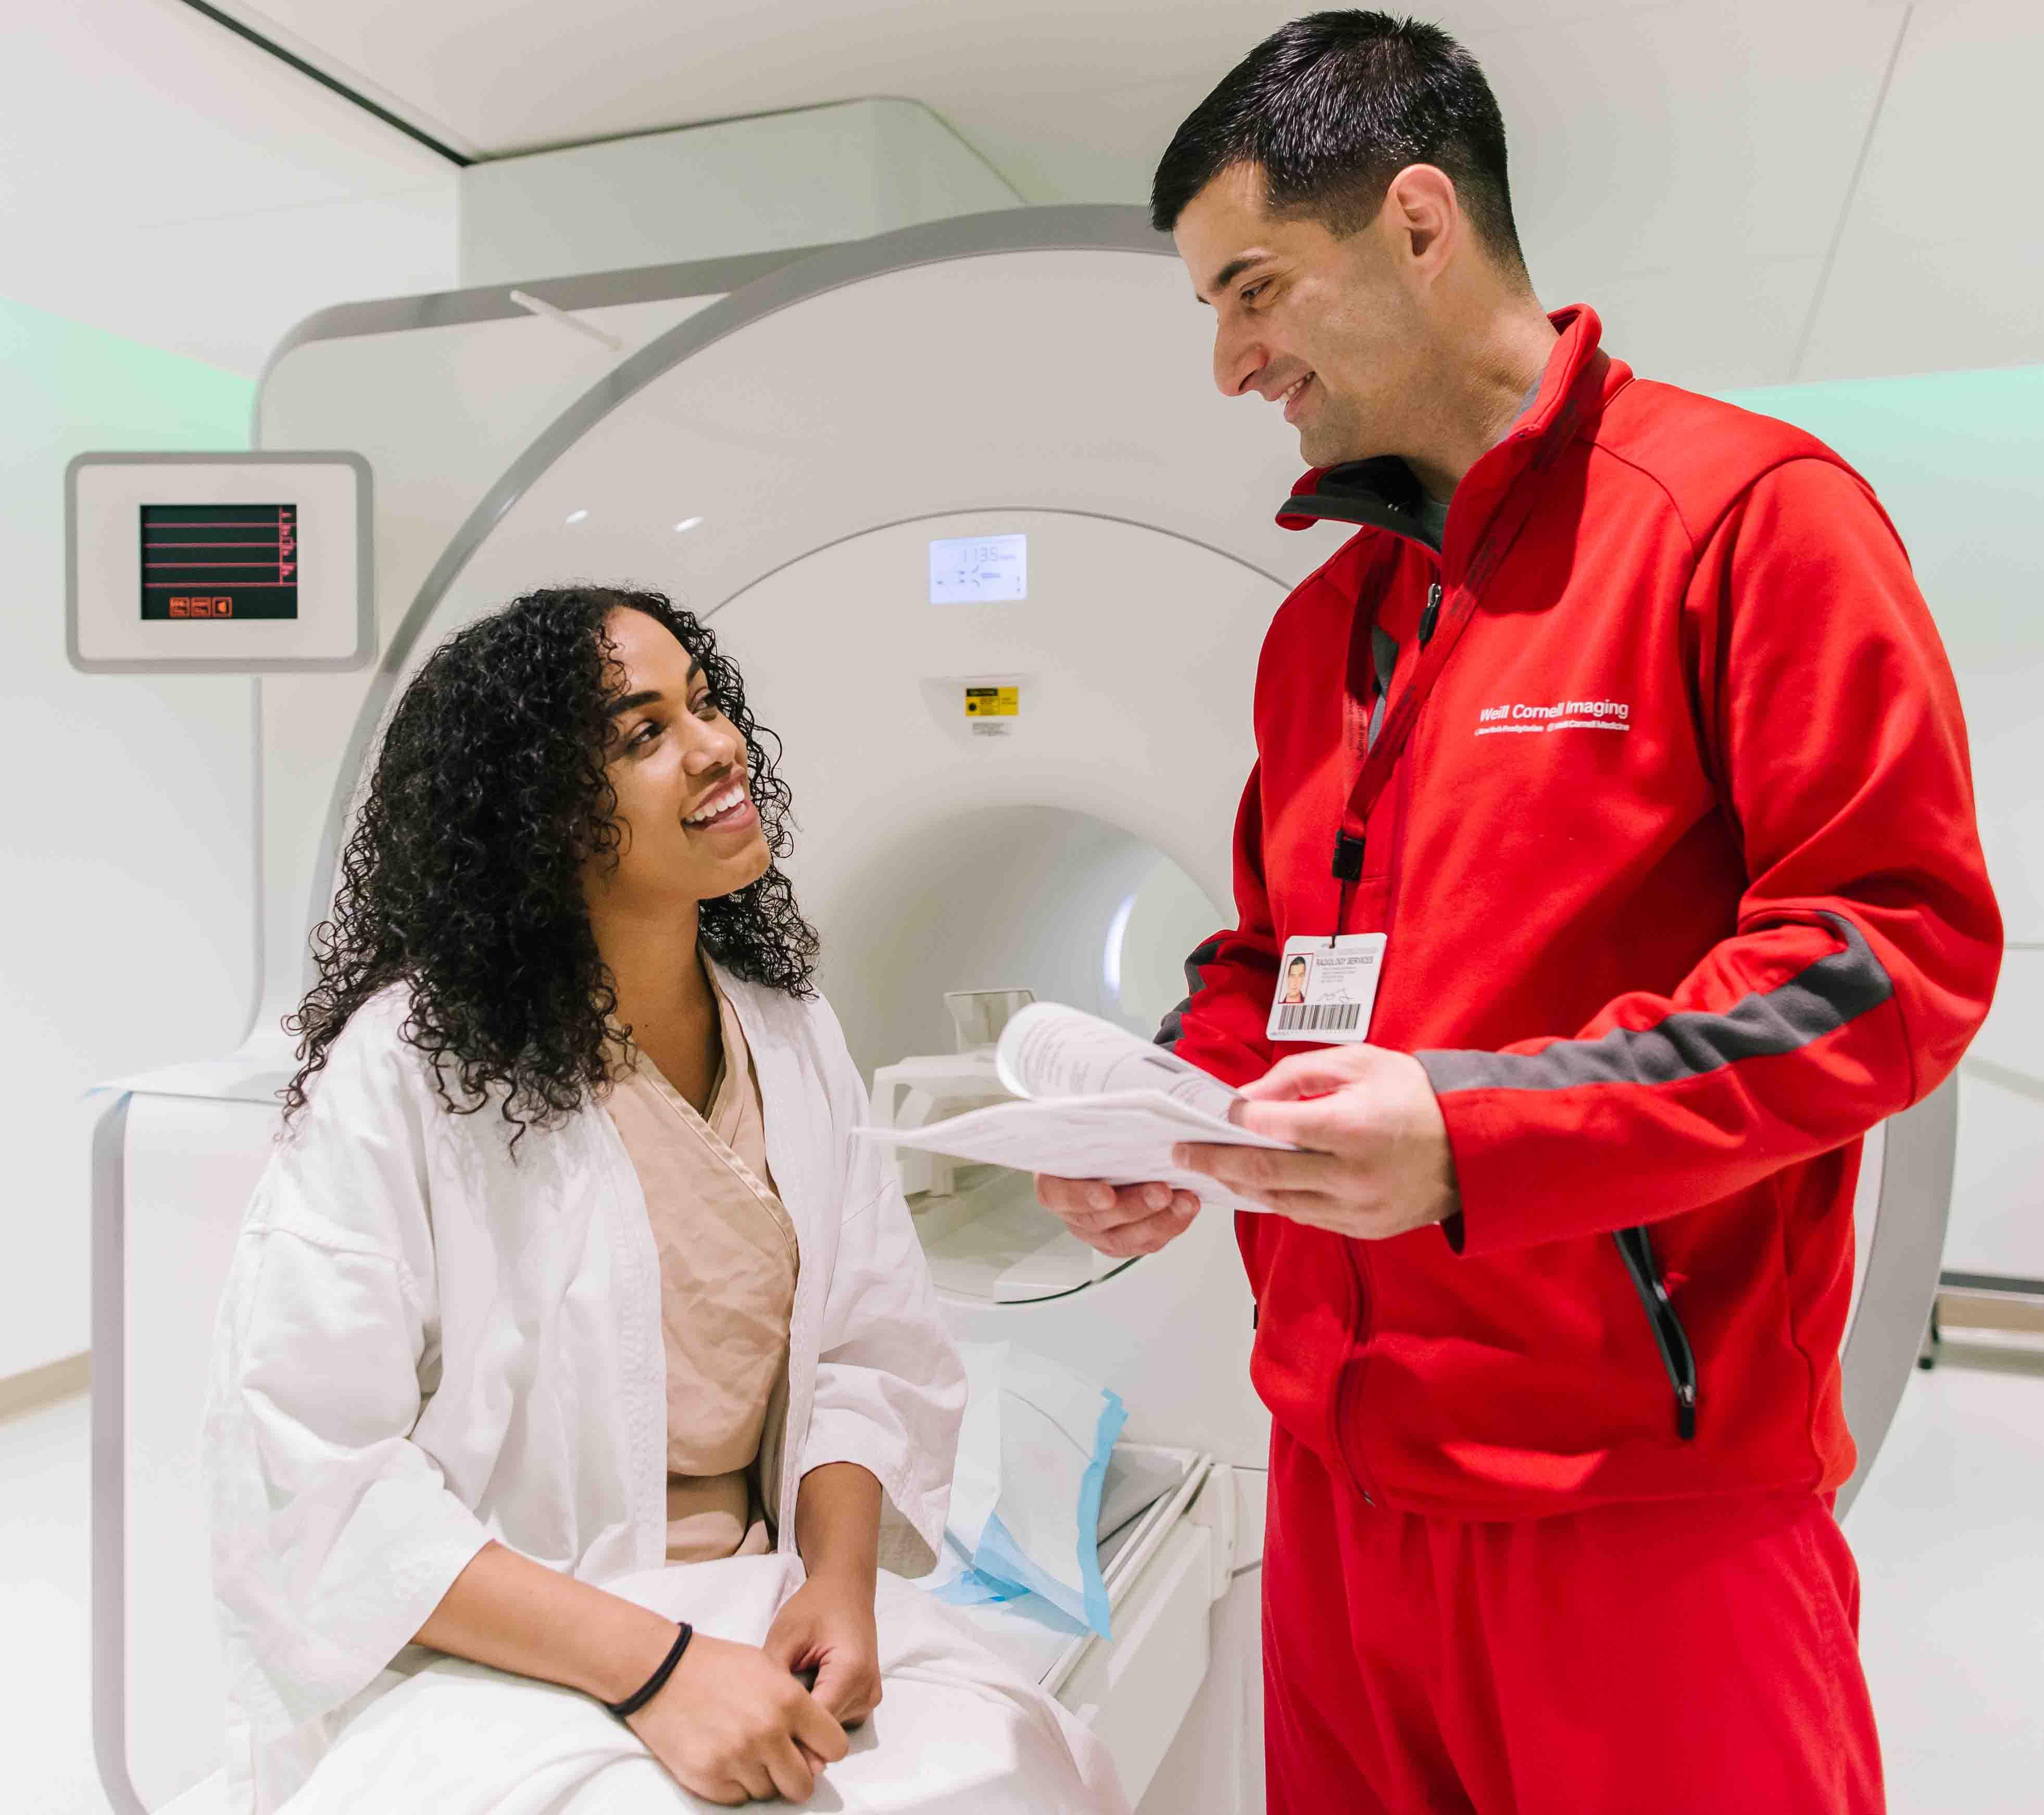 Weill Cornell Medicine MRI Technologist and Patient